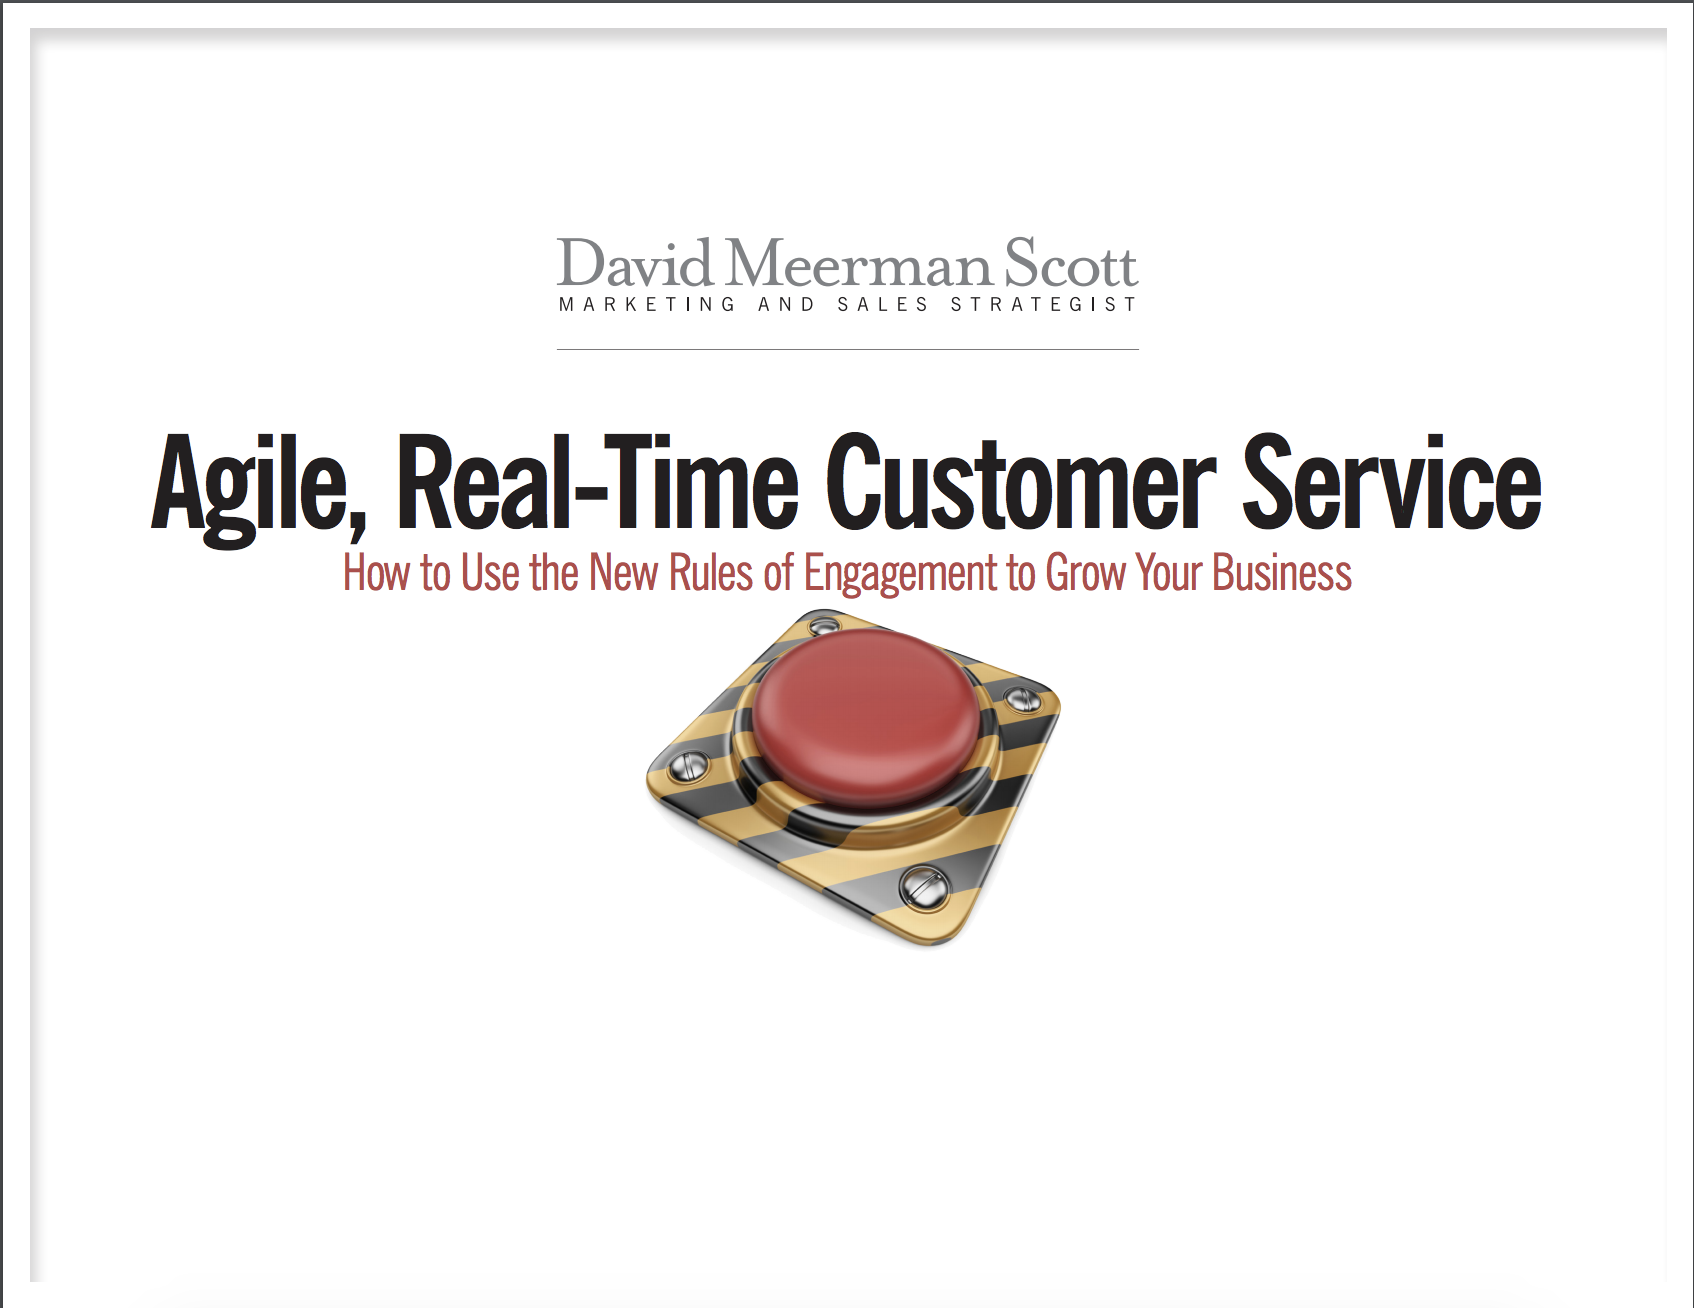 Agile, Real-Time Customer Service